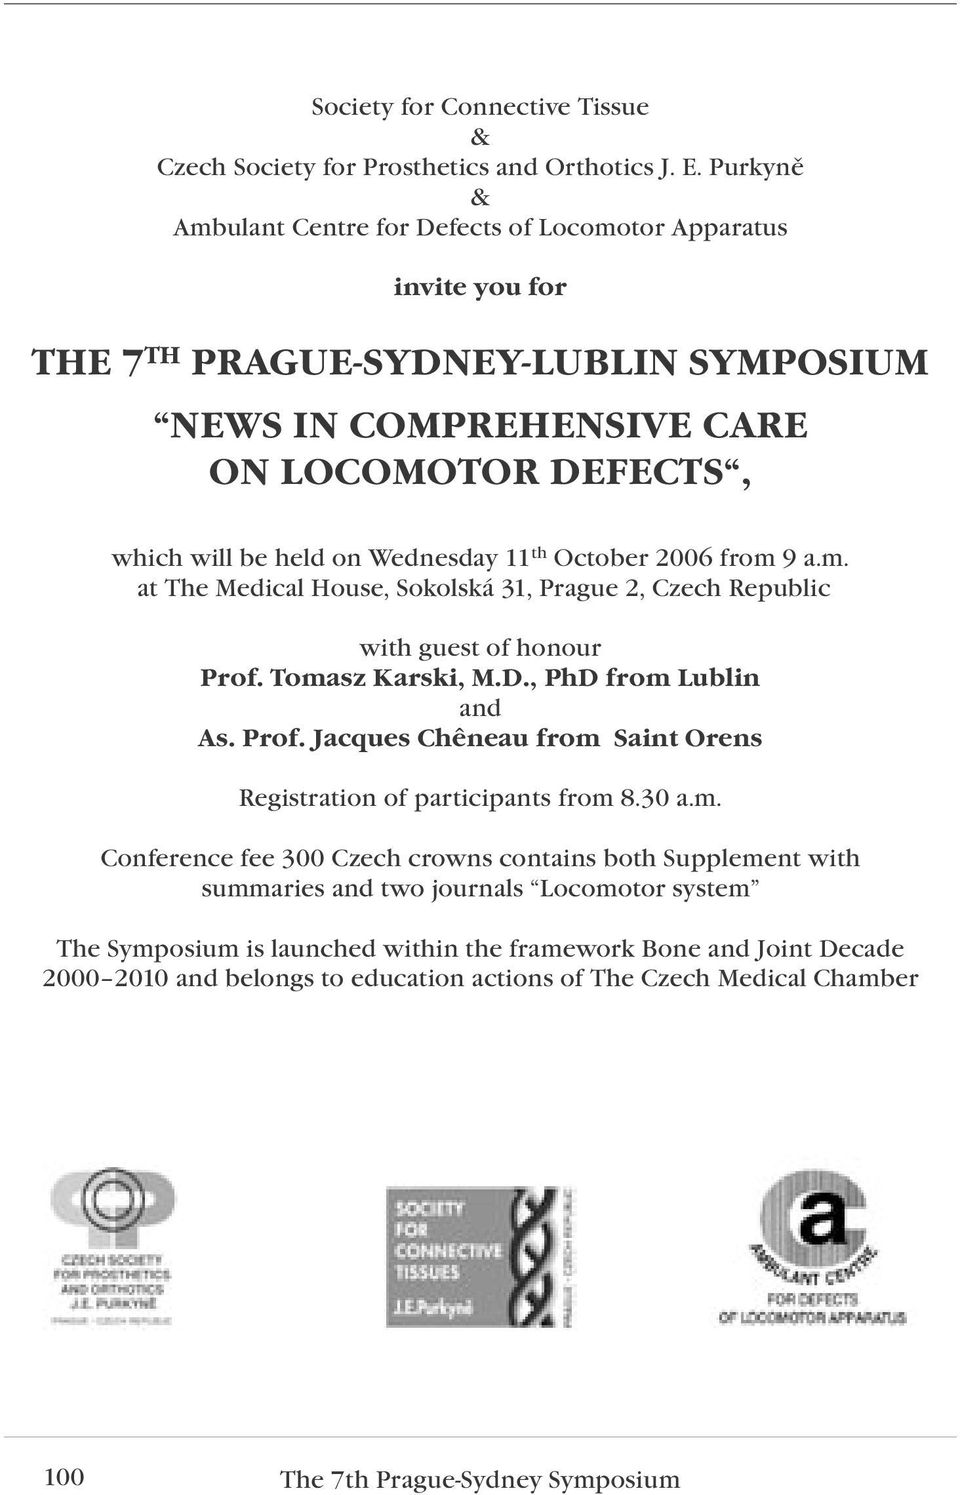 th October 2006 from 9 a.m. at The Medical House, Sokolská 31, Prague 2, Czech Republic with guest of honour Prof. Tomasz Karski, M.D., PhD from Lublin and As. Prof. Jacques Chêneau from Saint Orens Registration of participants from 8.